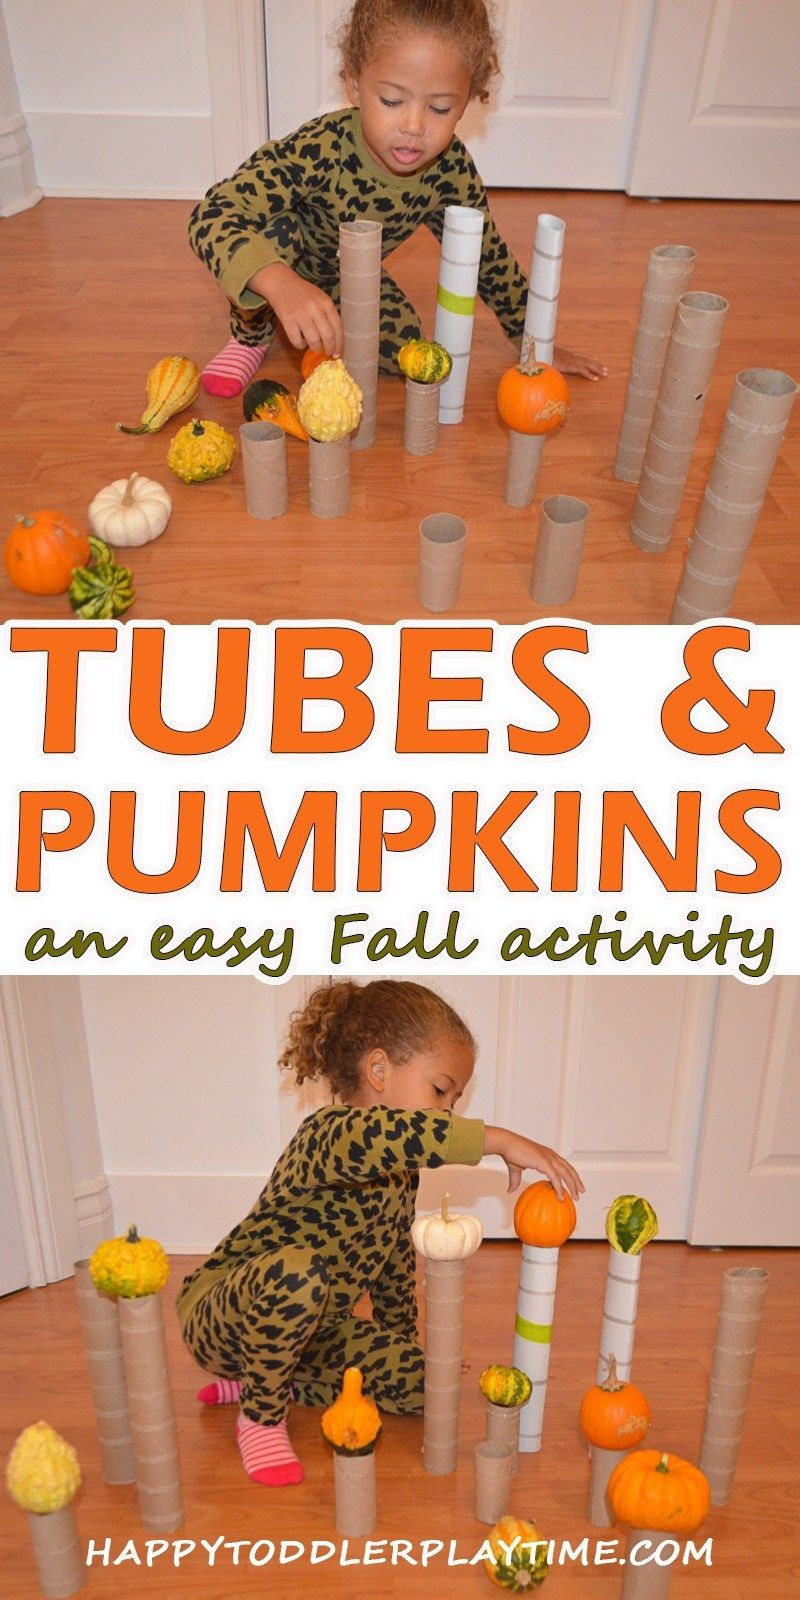 Tubes & Pumpkins: Fall STEM Activity - HAPPY TODDLER PLAYTIME